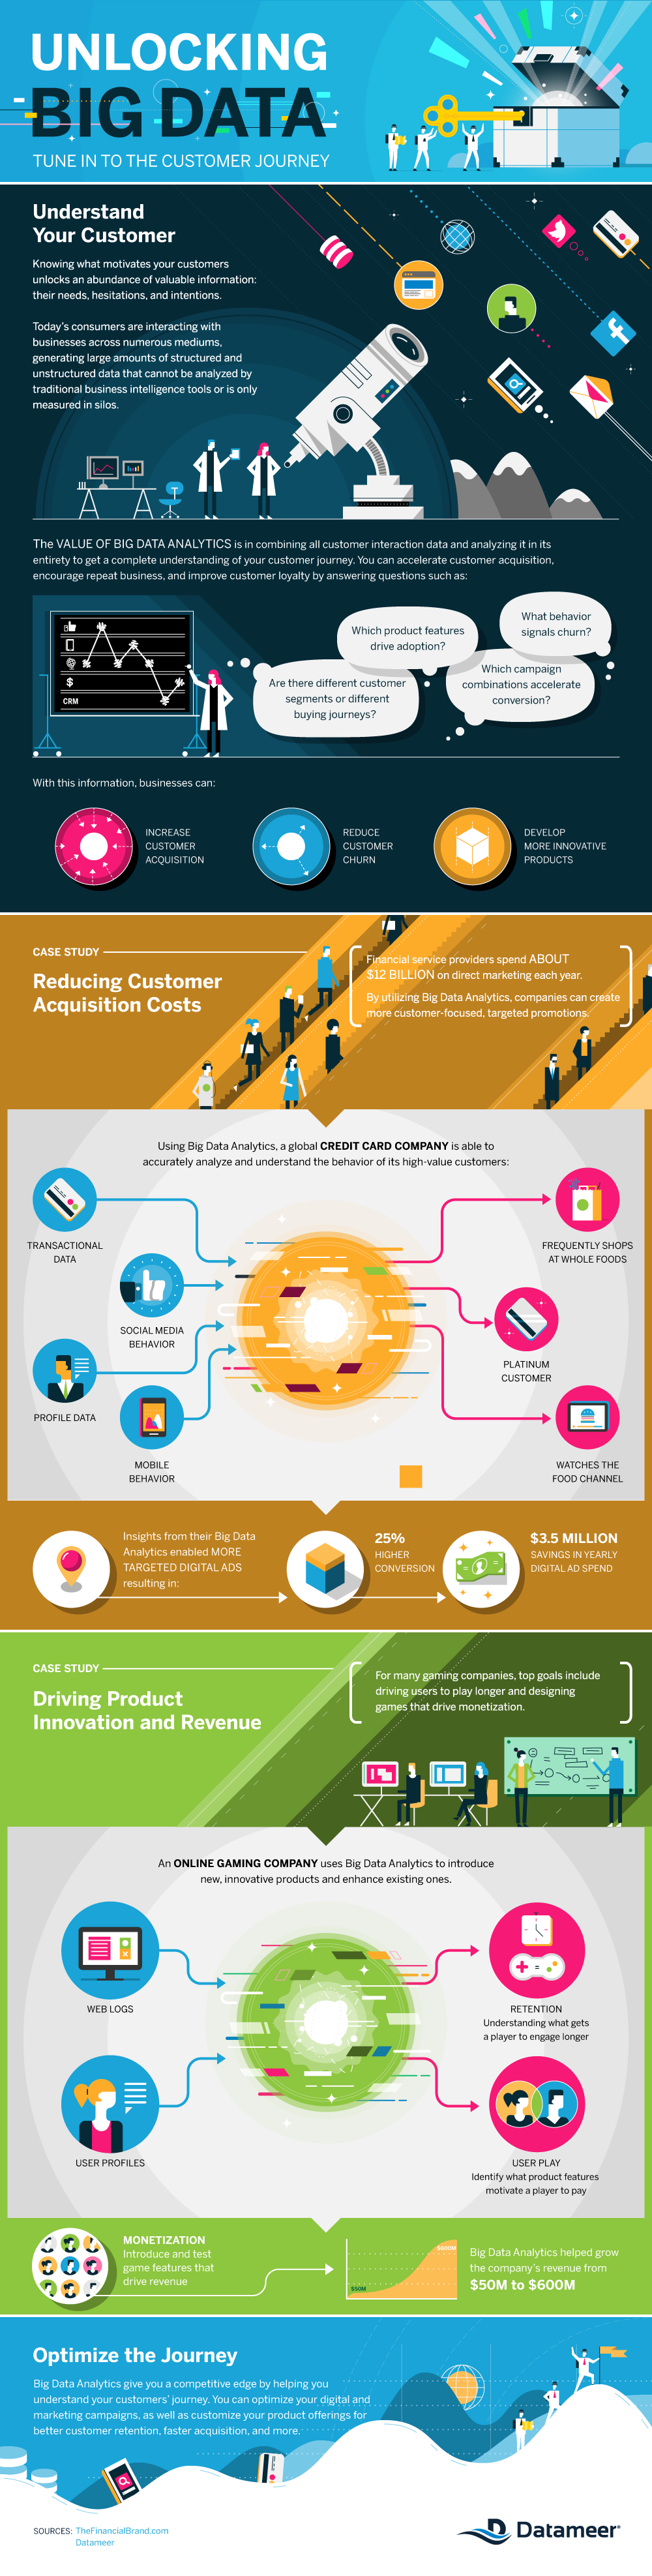 Unlocking Big Data Tune in to the Customer Journey #infographic